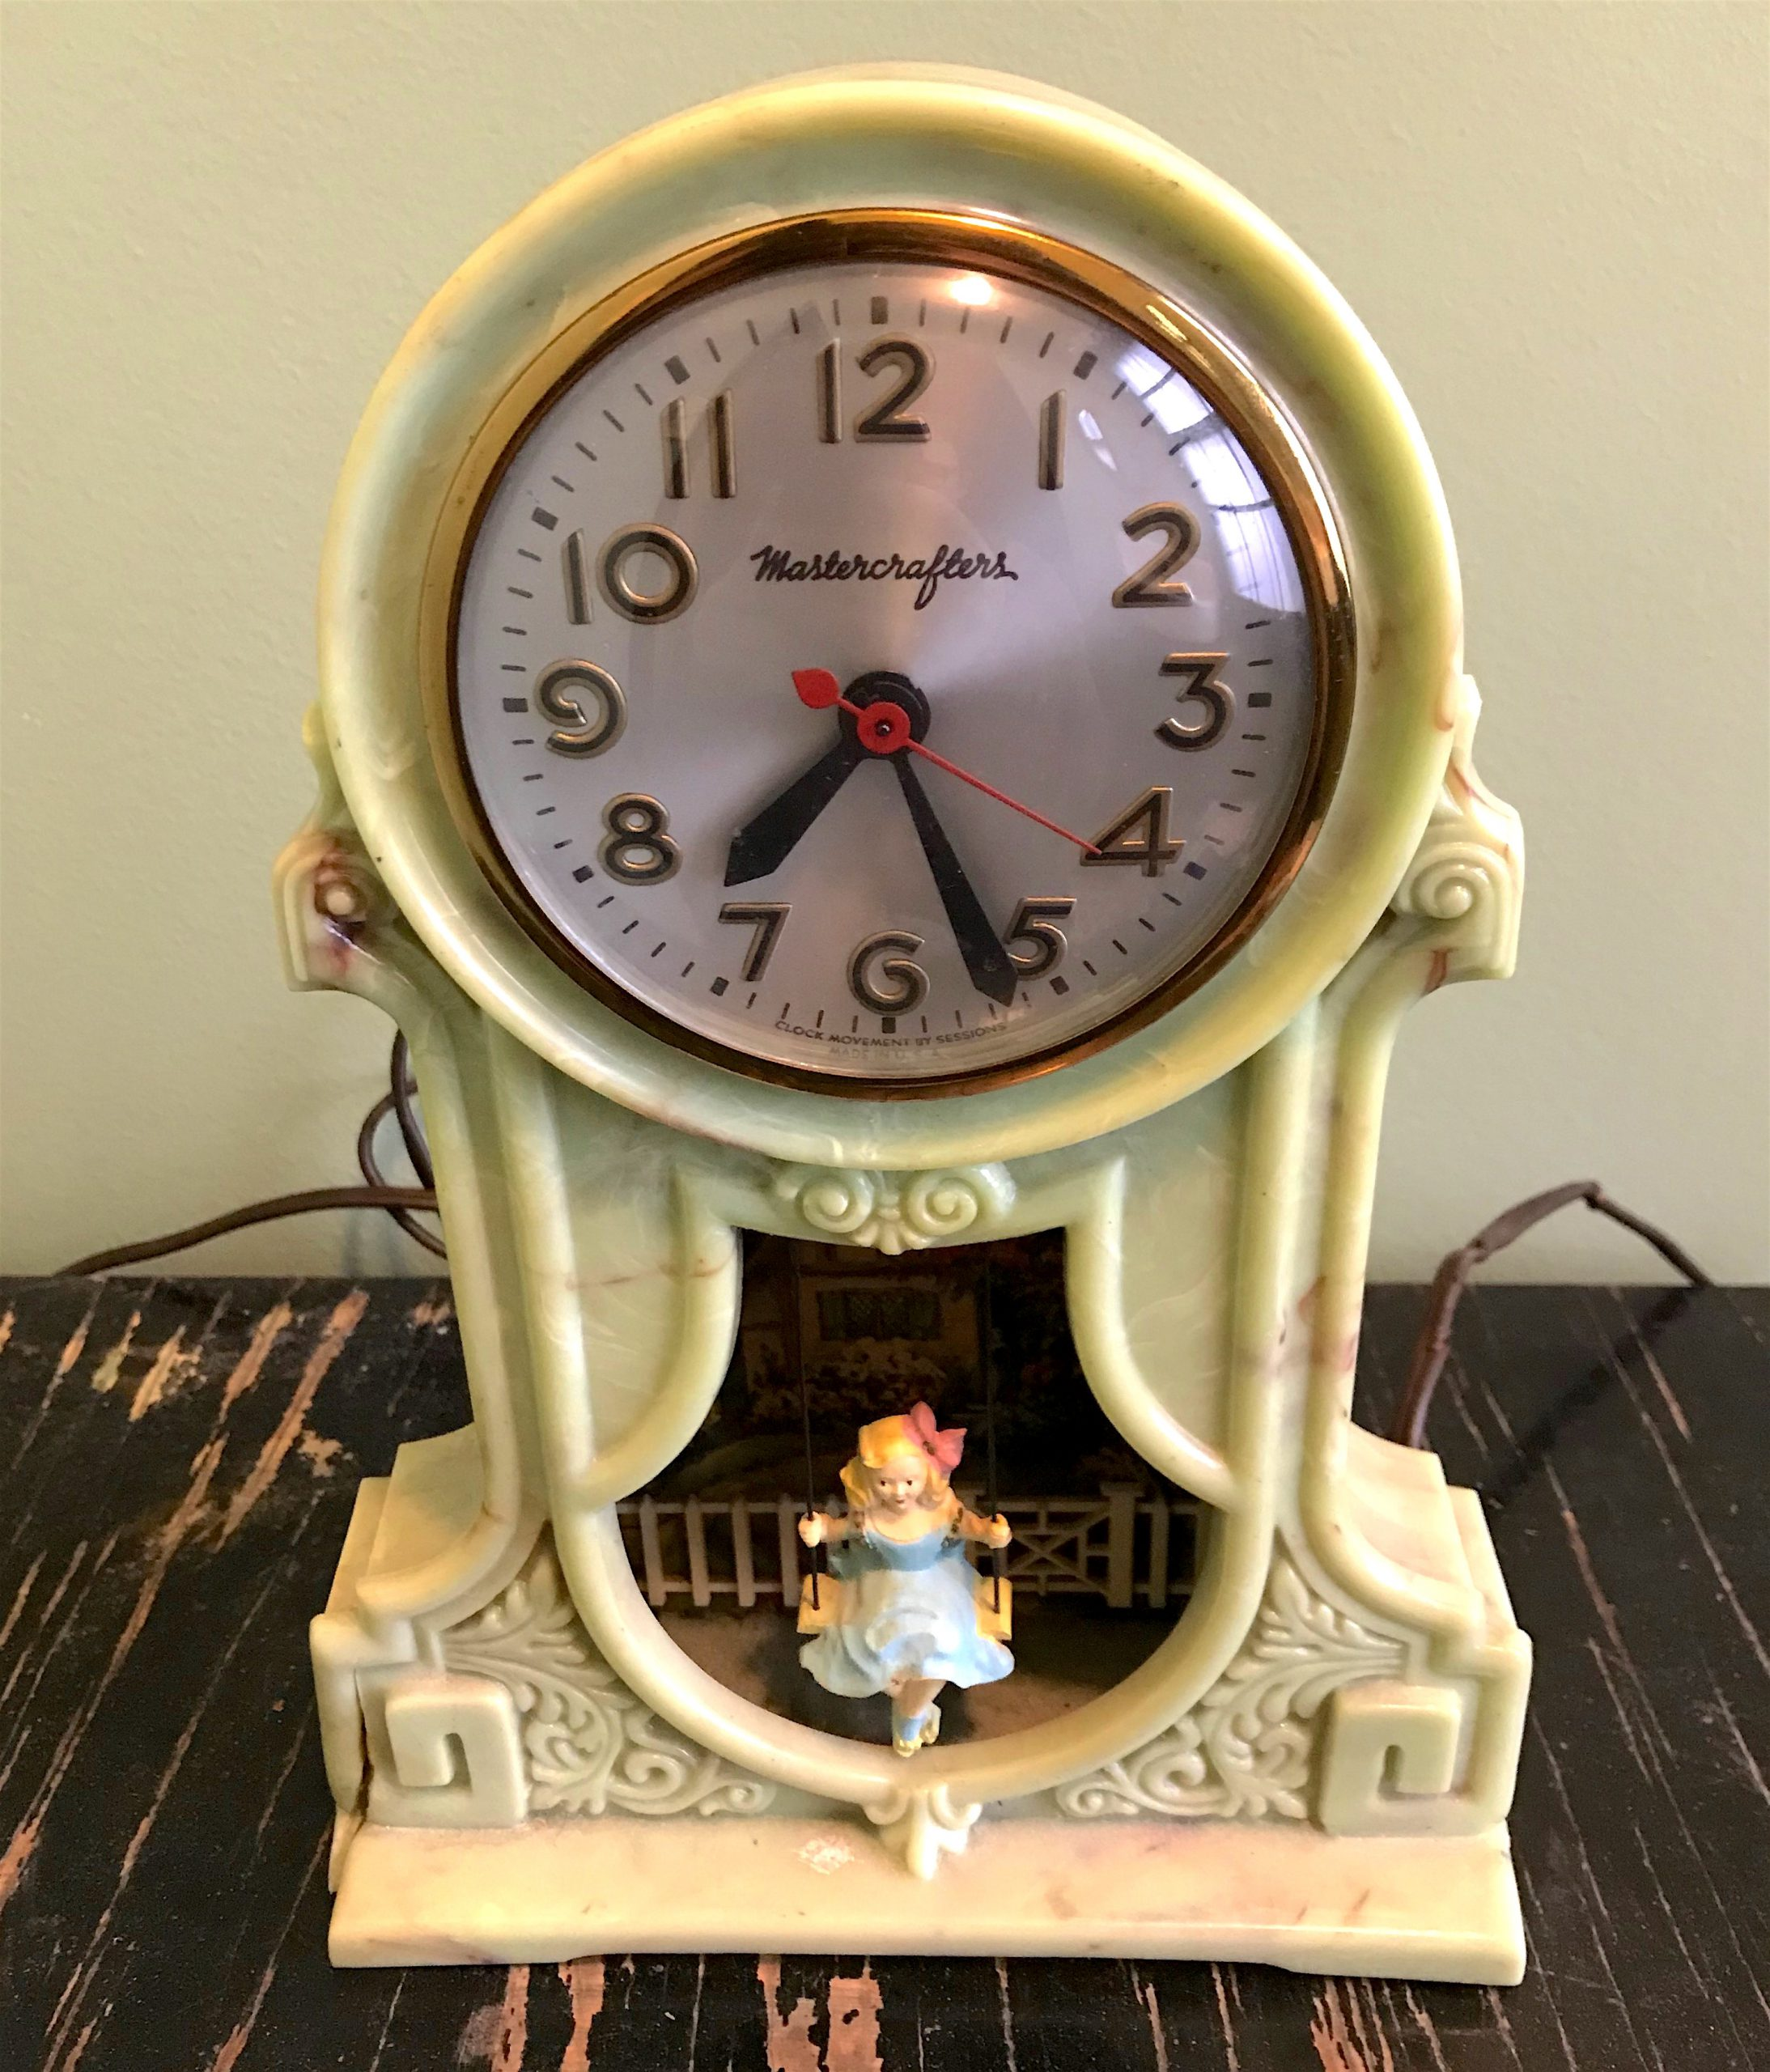 MasterCrafters Clock & Radio Co., est. 1943